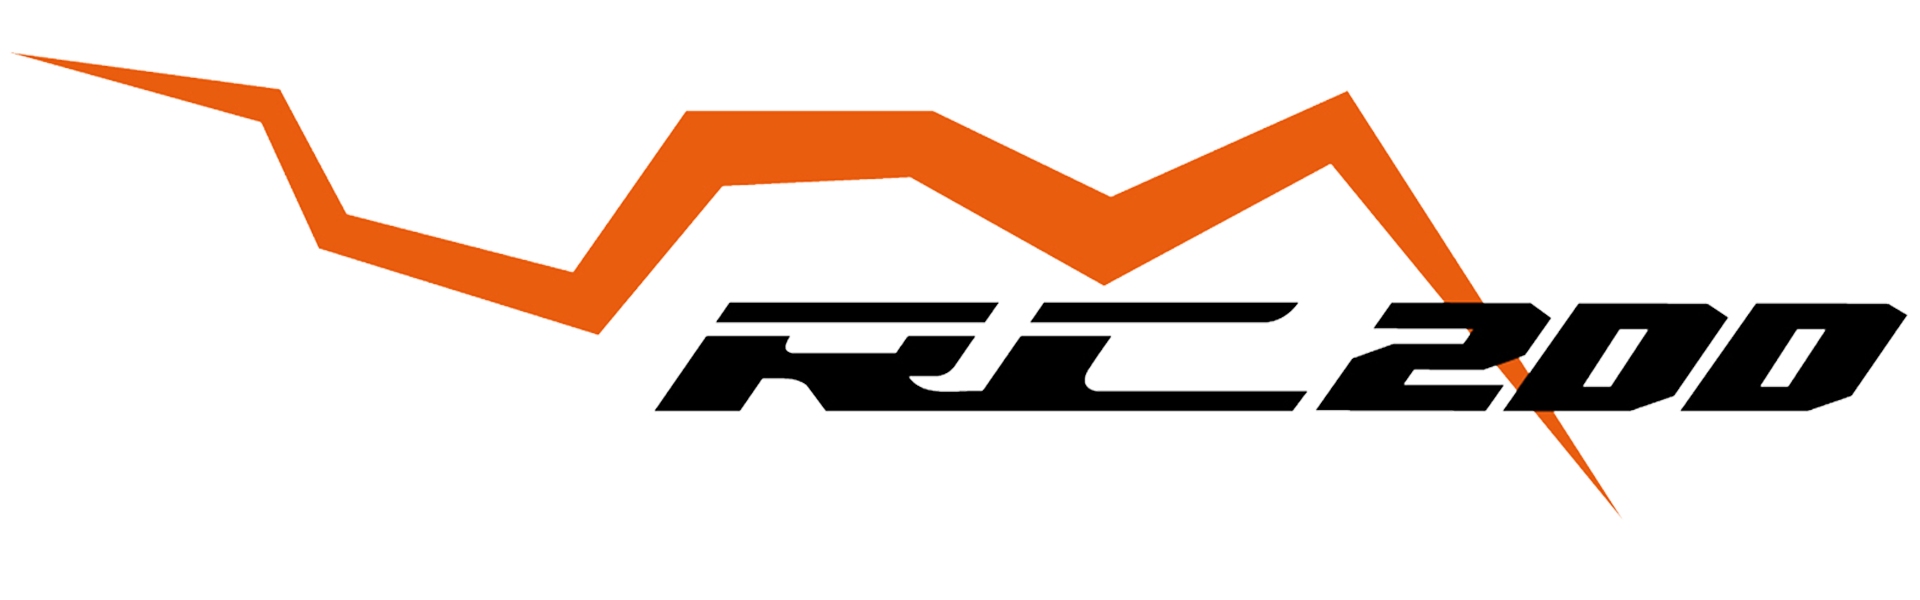 Image result for ktm rc 200 logo